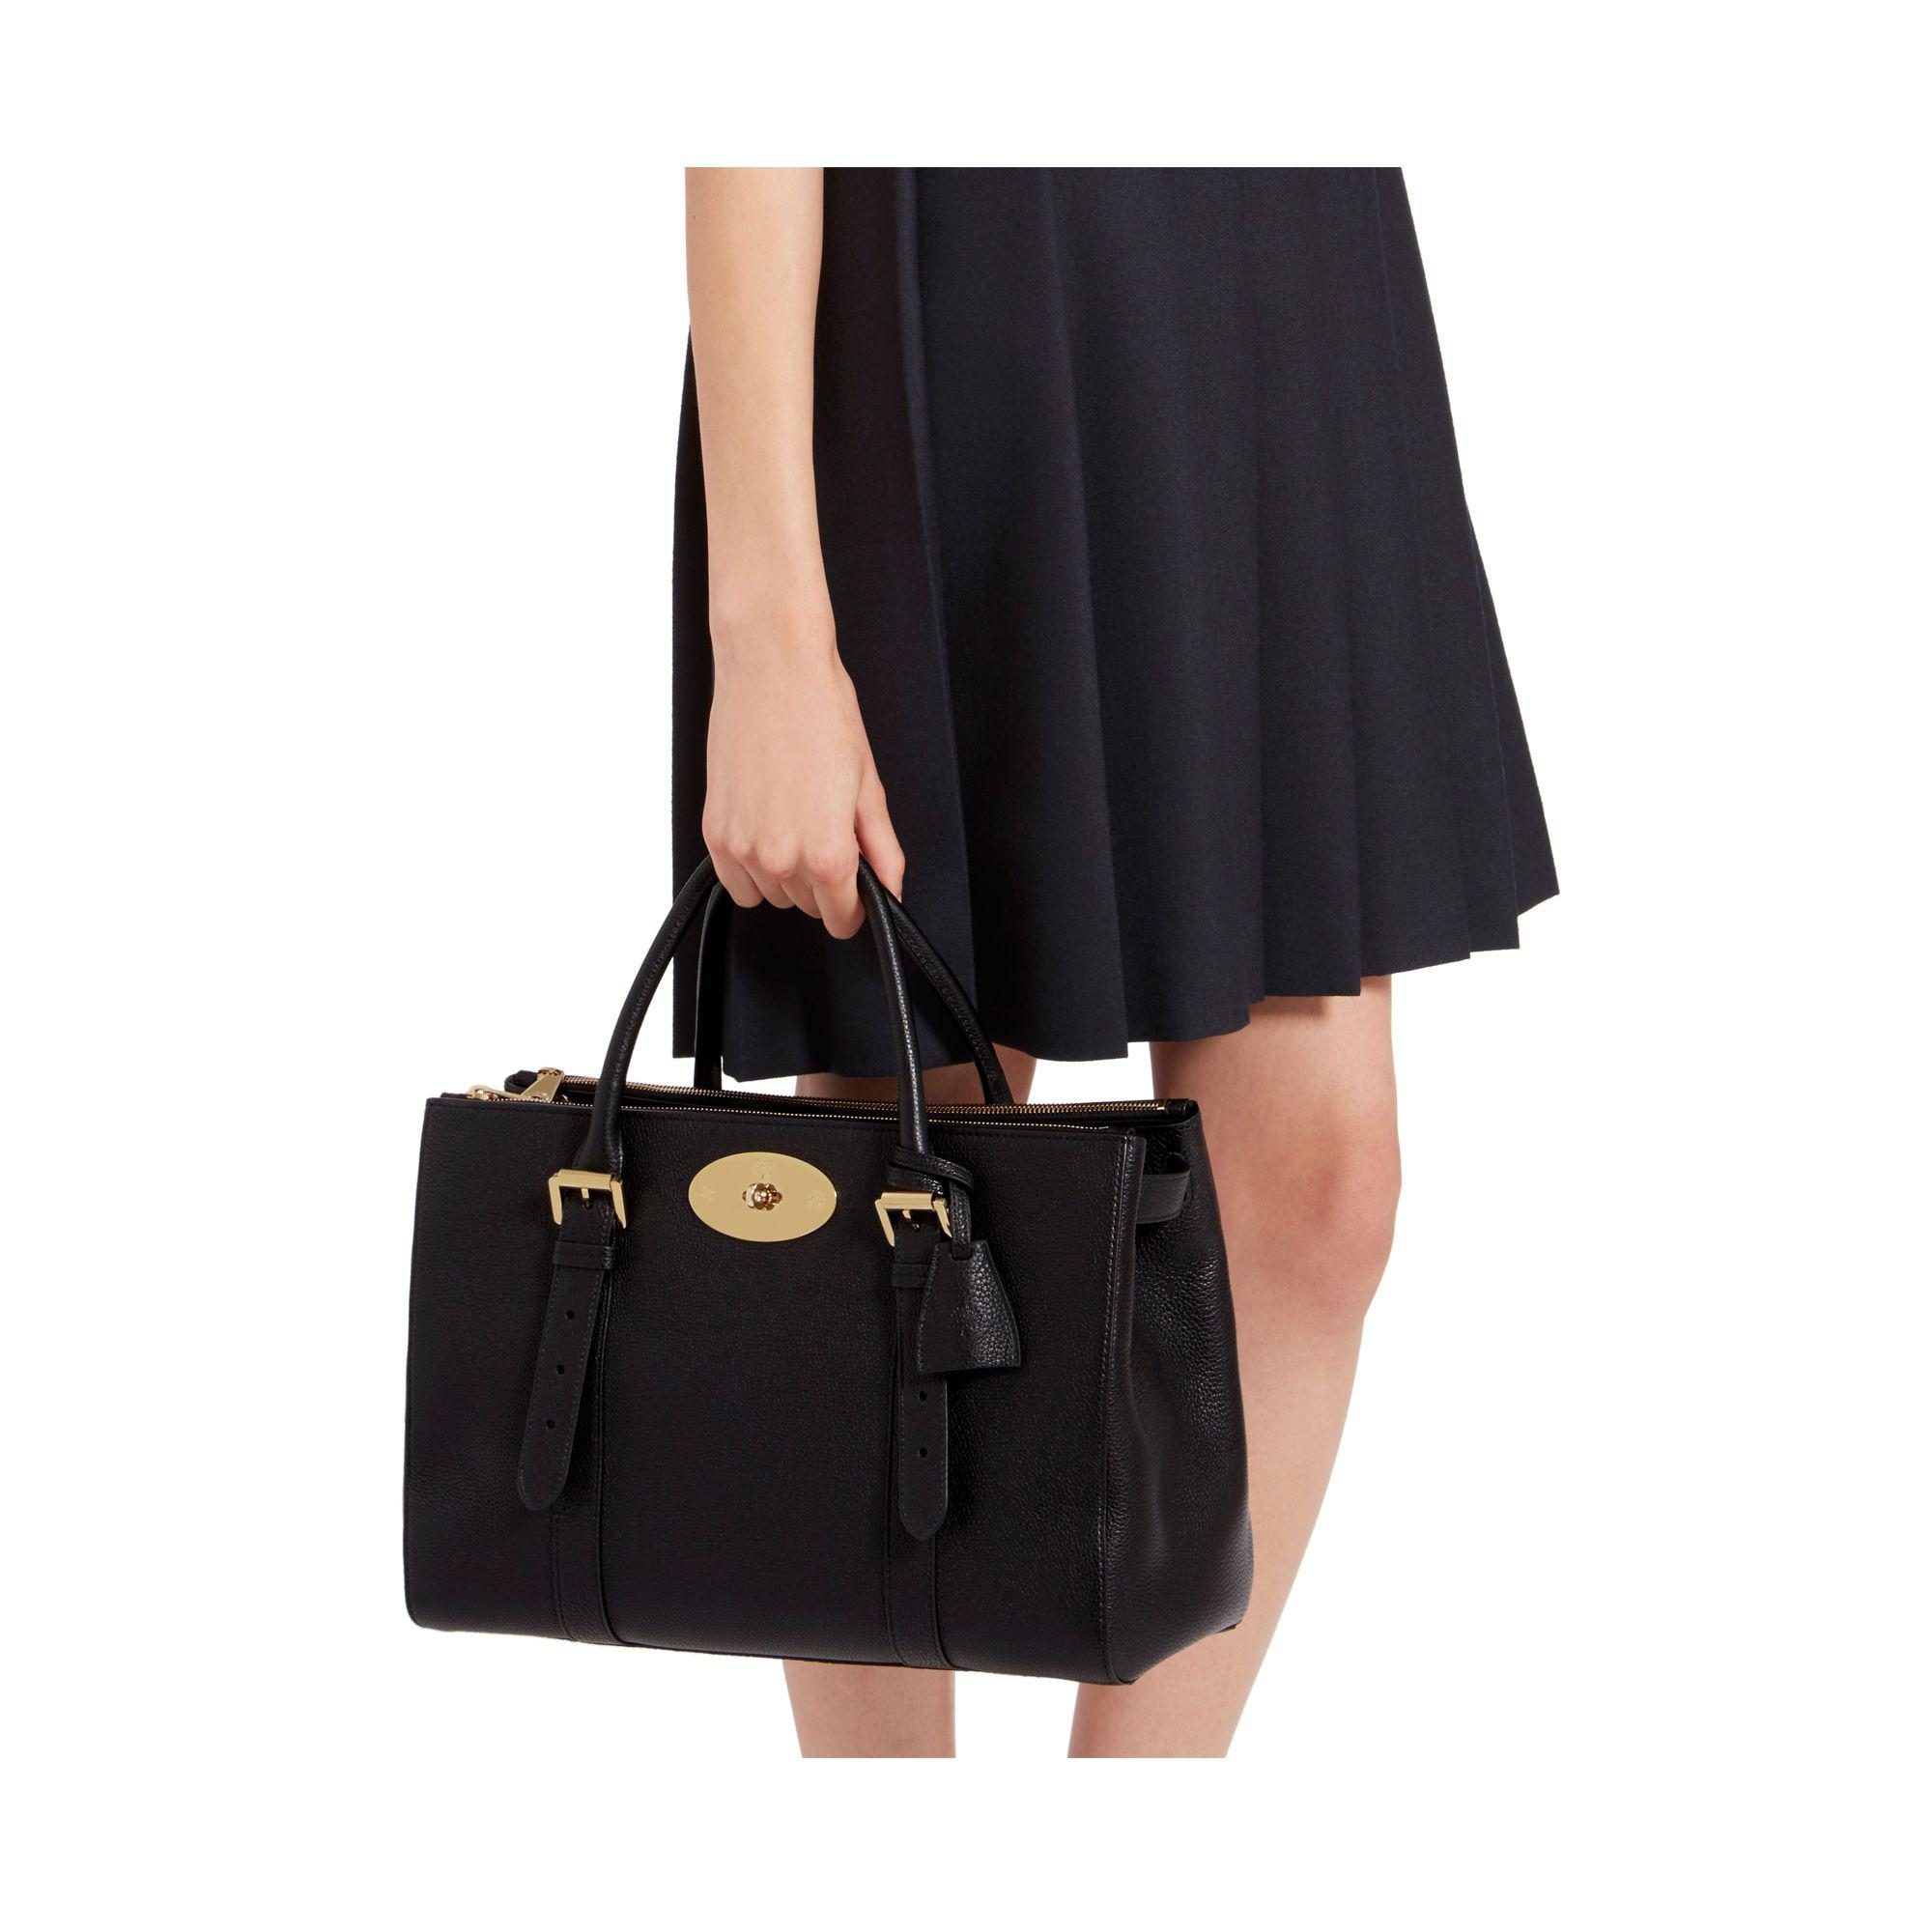 Lyst - Mulberry Bayswater Double Zip Tote Bag in Black cc59b53985678